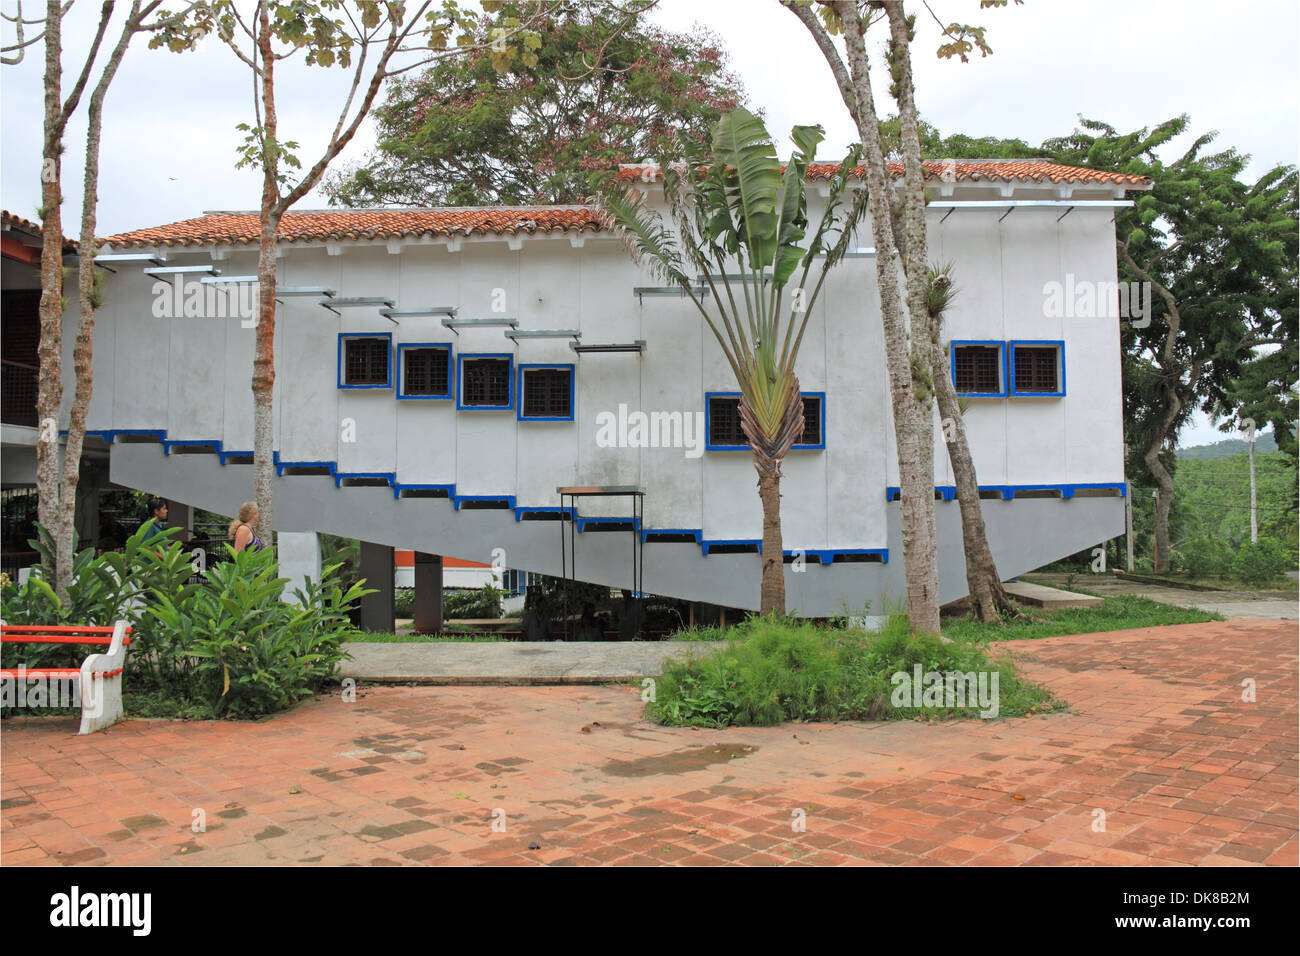 Cuban communities im genes de stock cuban communities fotos de stock alamy - Artesiete cine las terrazas ...